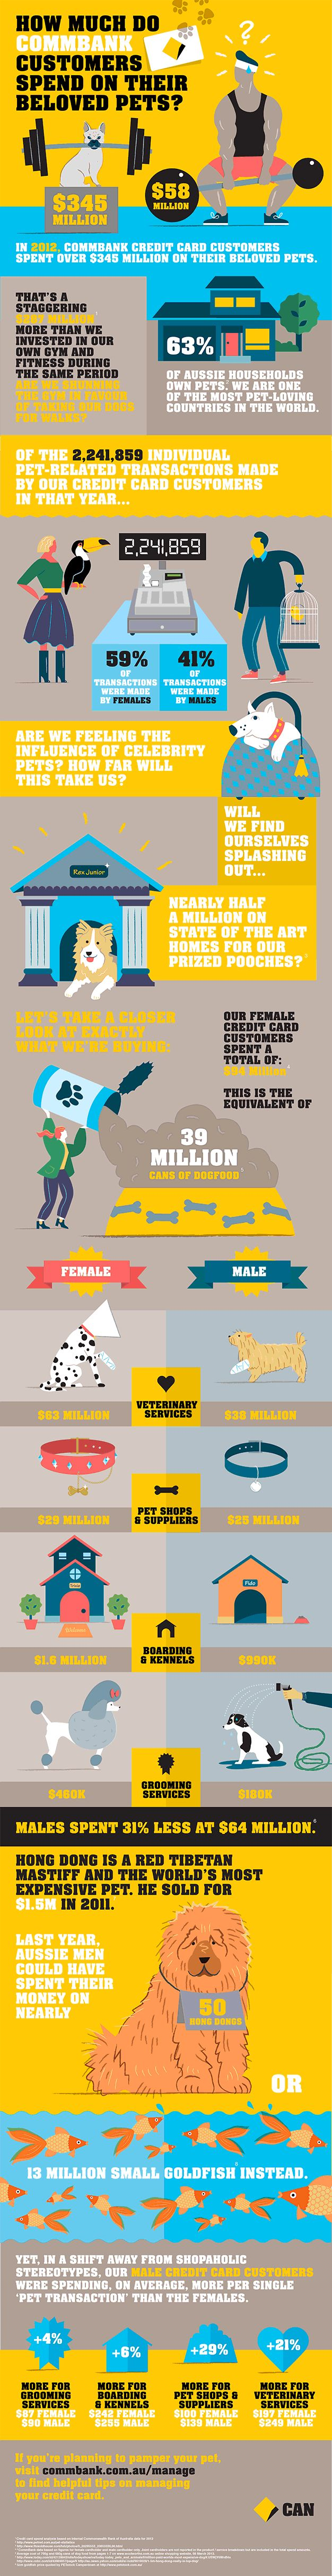 how much do CommBank customers spend on their pets?